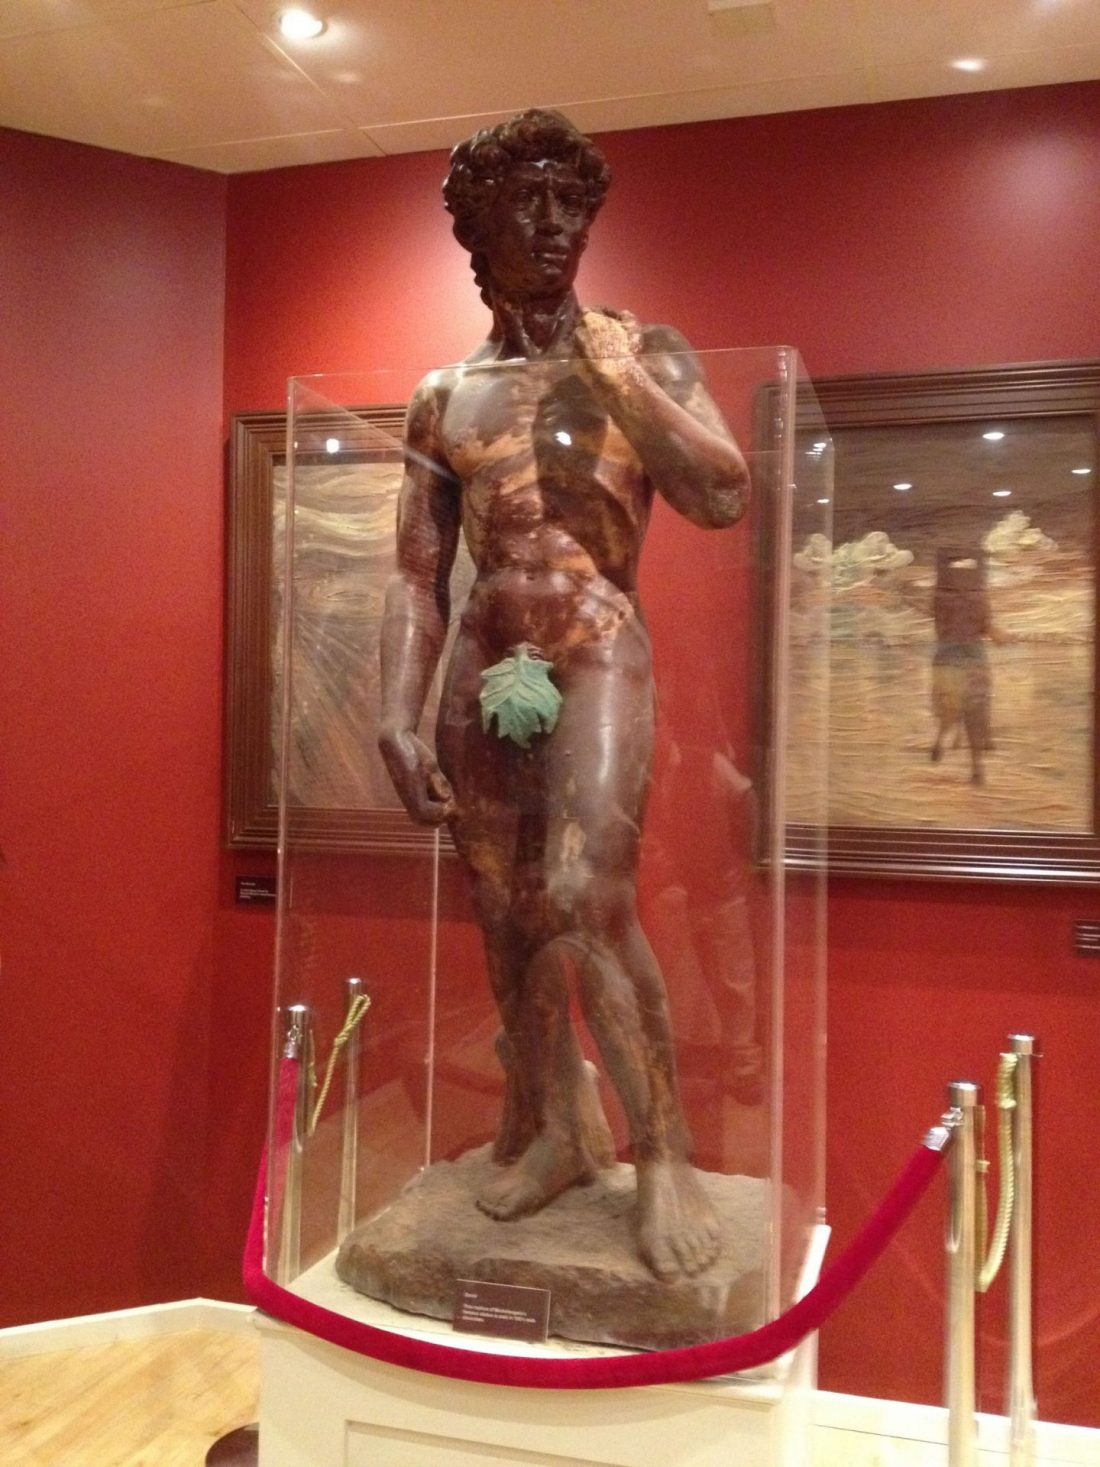 Da Vinci's David made from chocolate